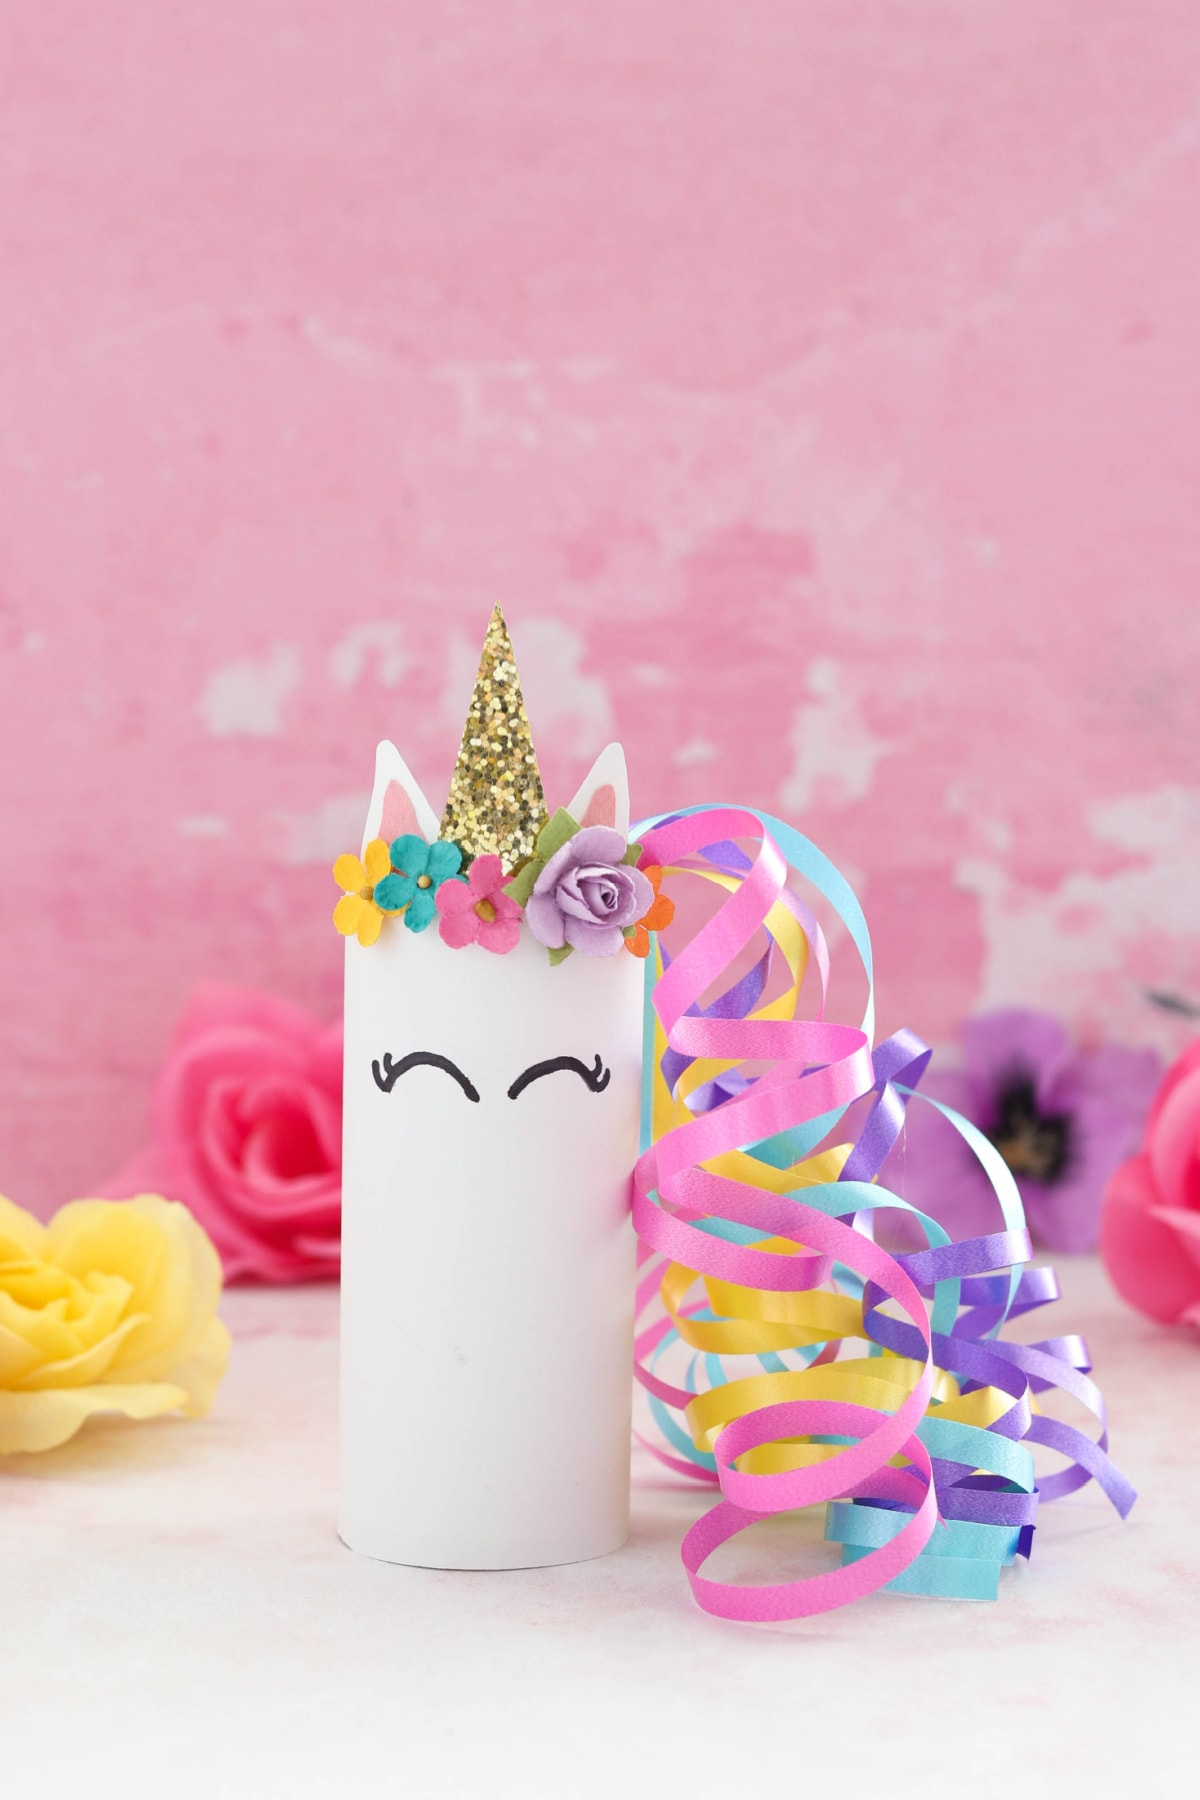 Unicorn toilet paper roll craft with flowers